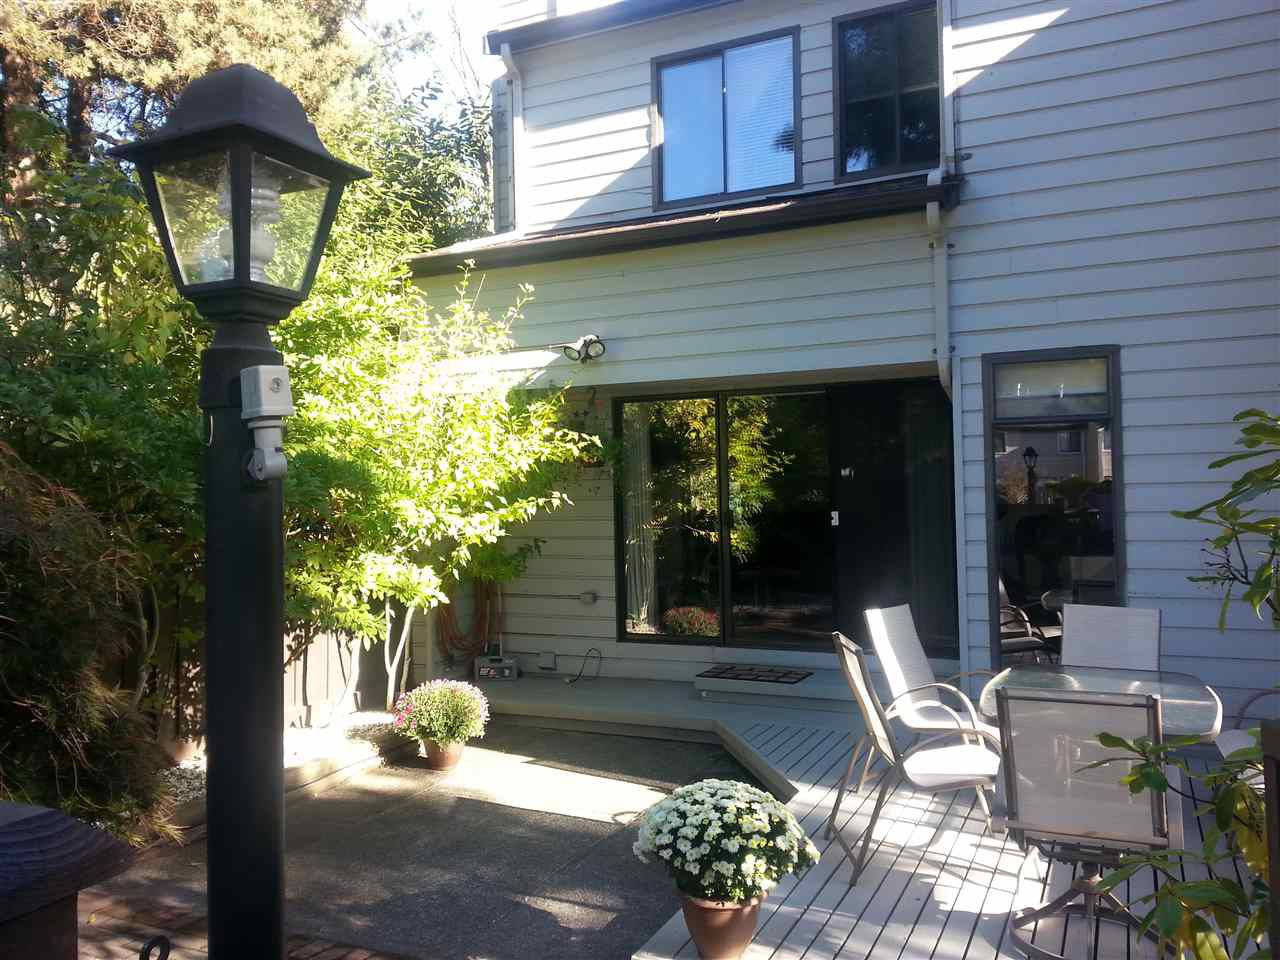 """Main Photo: 11 3350 ROSEMONT Drive in Vancouver: Champlain Heights Townhouse for sale in """"APENWOOD"""" (Vancouver East)  : MLS®# R2233904"""